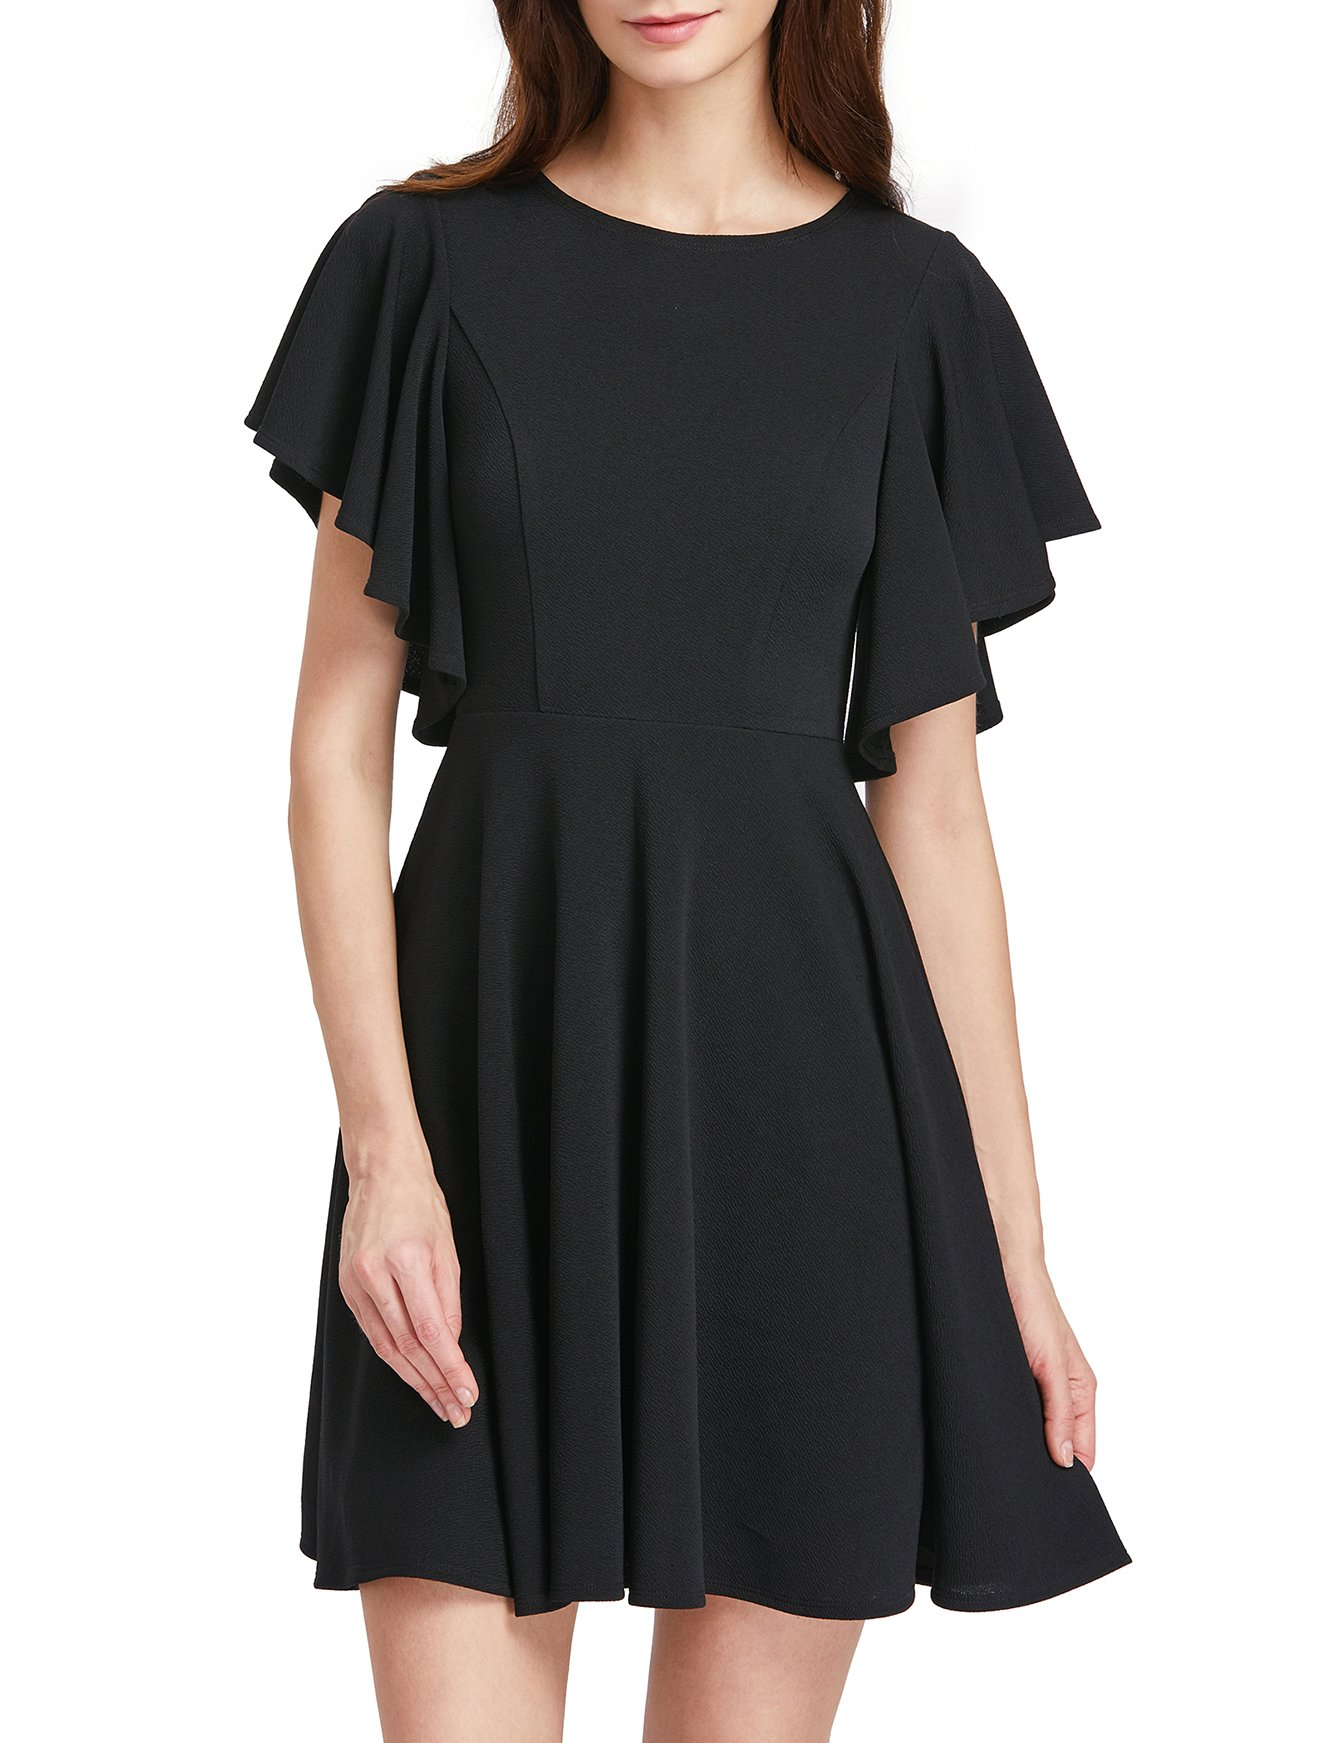 ROMWE Women's Stretchy A Line Swing Flared Skater Cocktail Party Dress Black L by Romwe (Image #5)